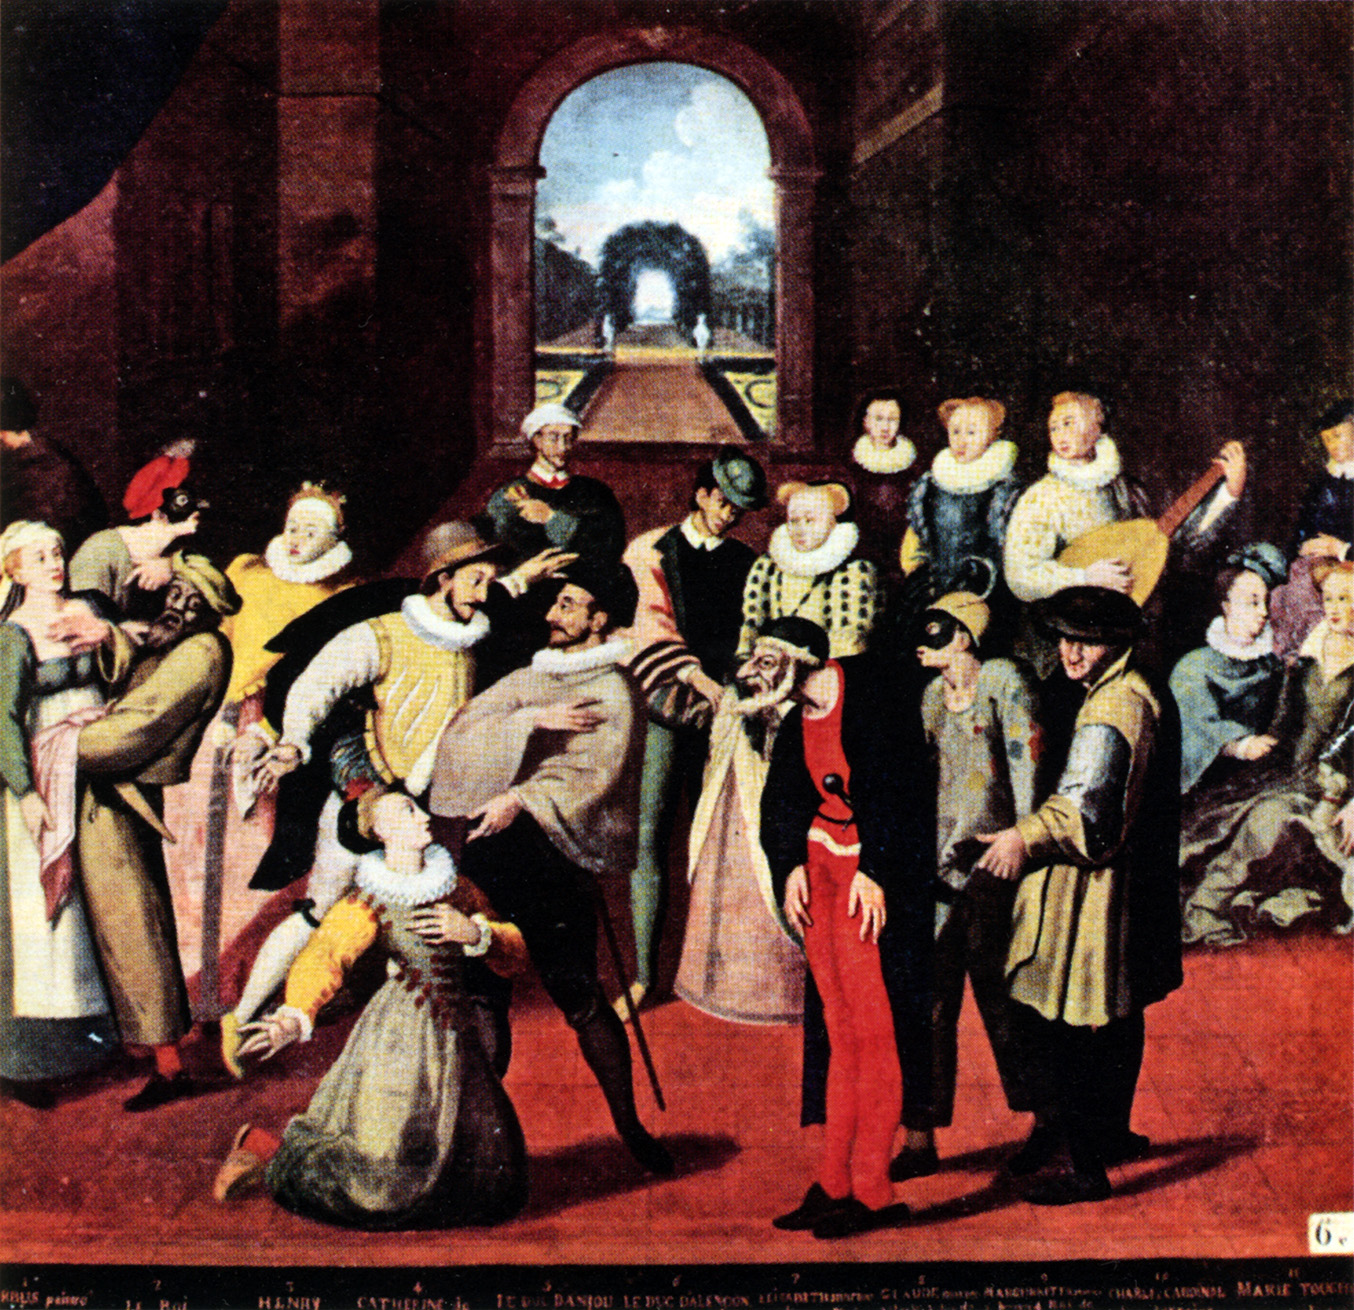 Catherine de' Medici playing the role of 'Columbine', possibly with the Ganassa troupe (c. 1574) [Picture 4]